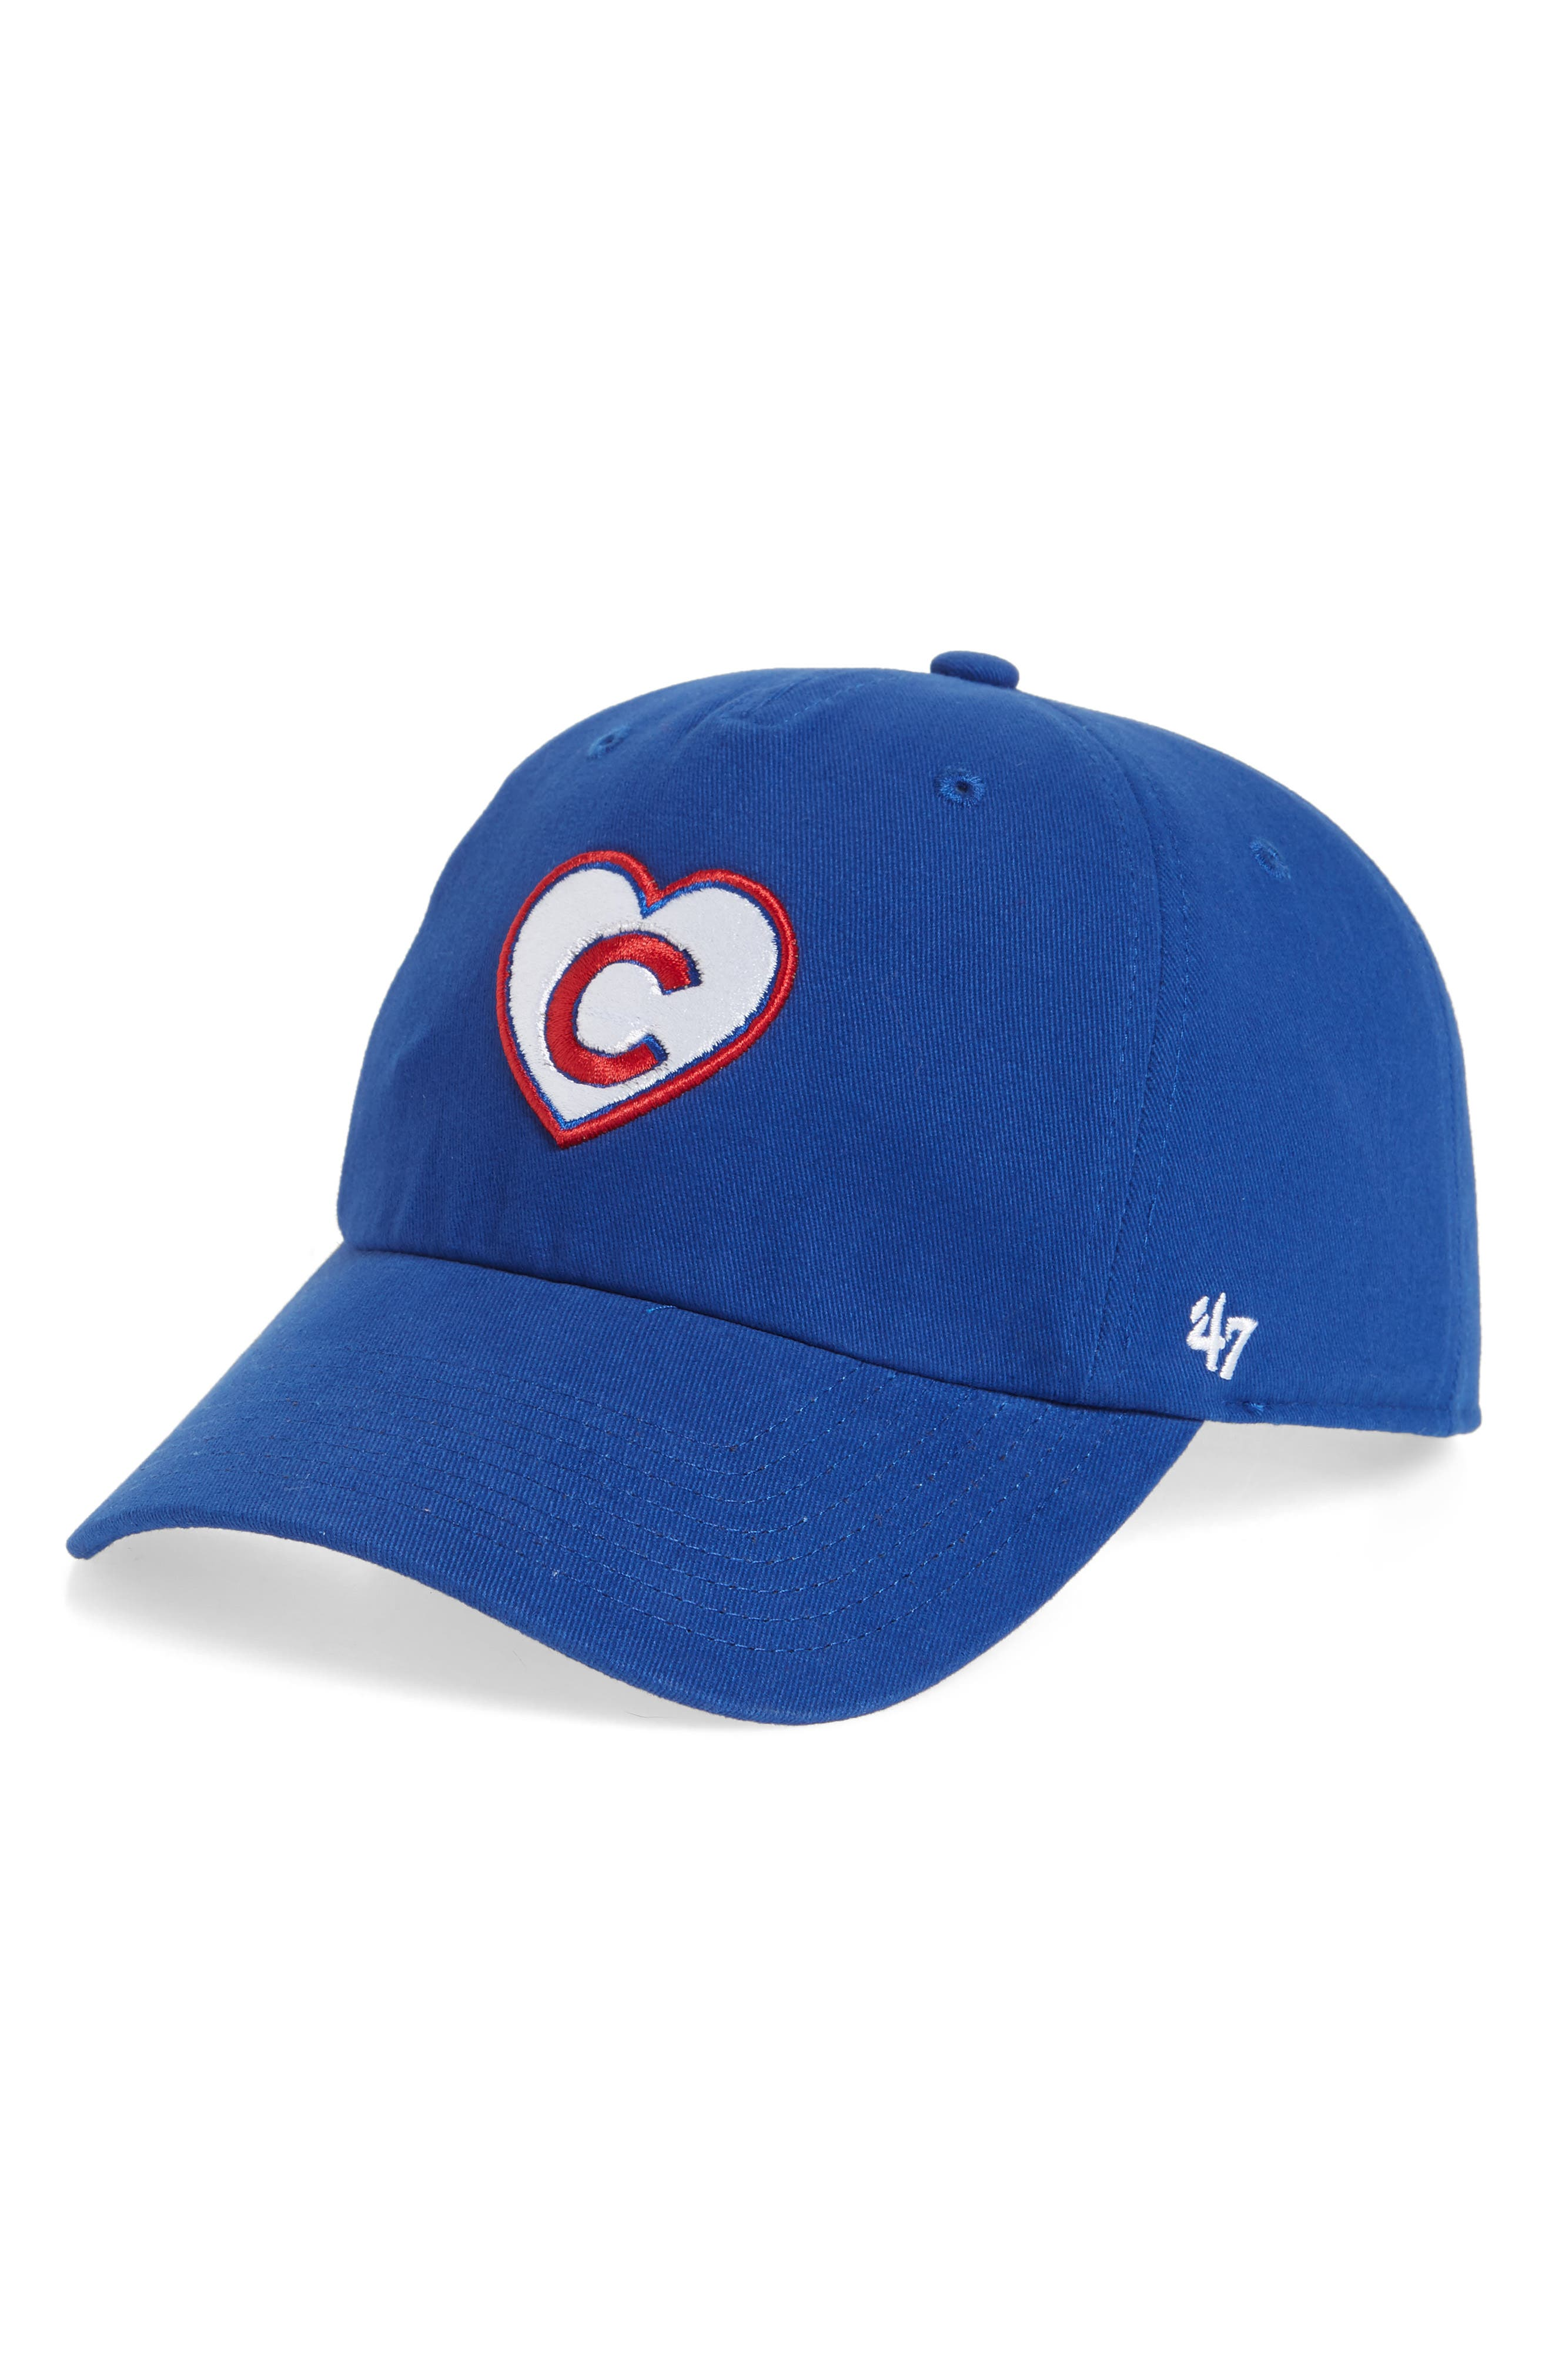 Courtney Clean-Up Chicago Cubs Baseball Cap,                             Main thumbnail 1, color,                             400